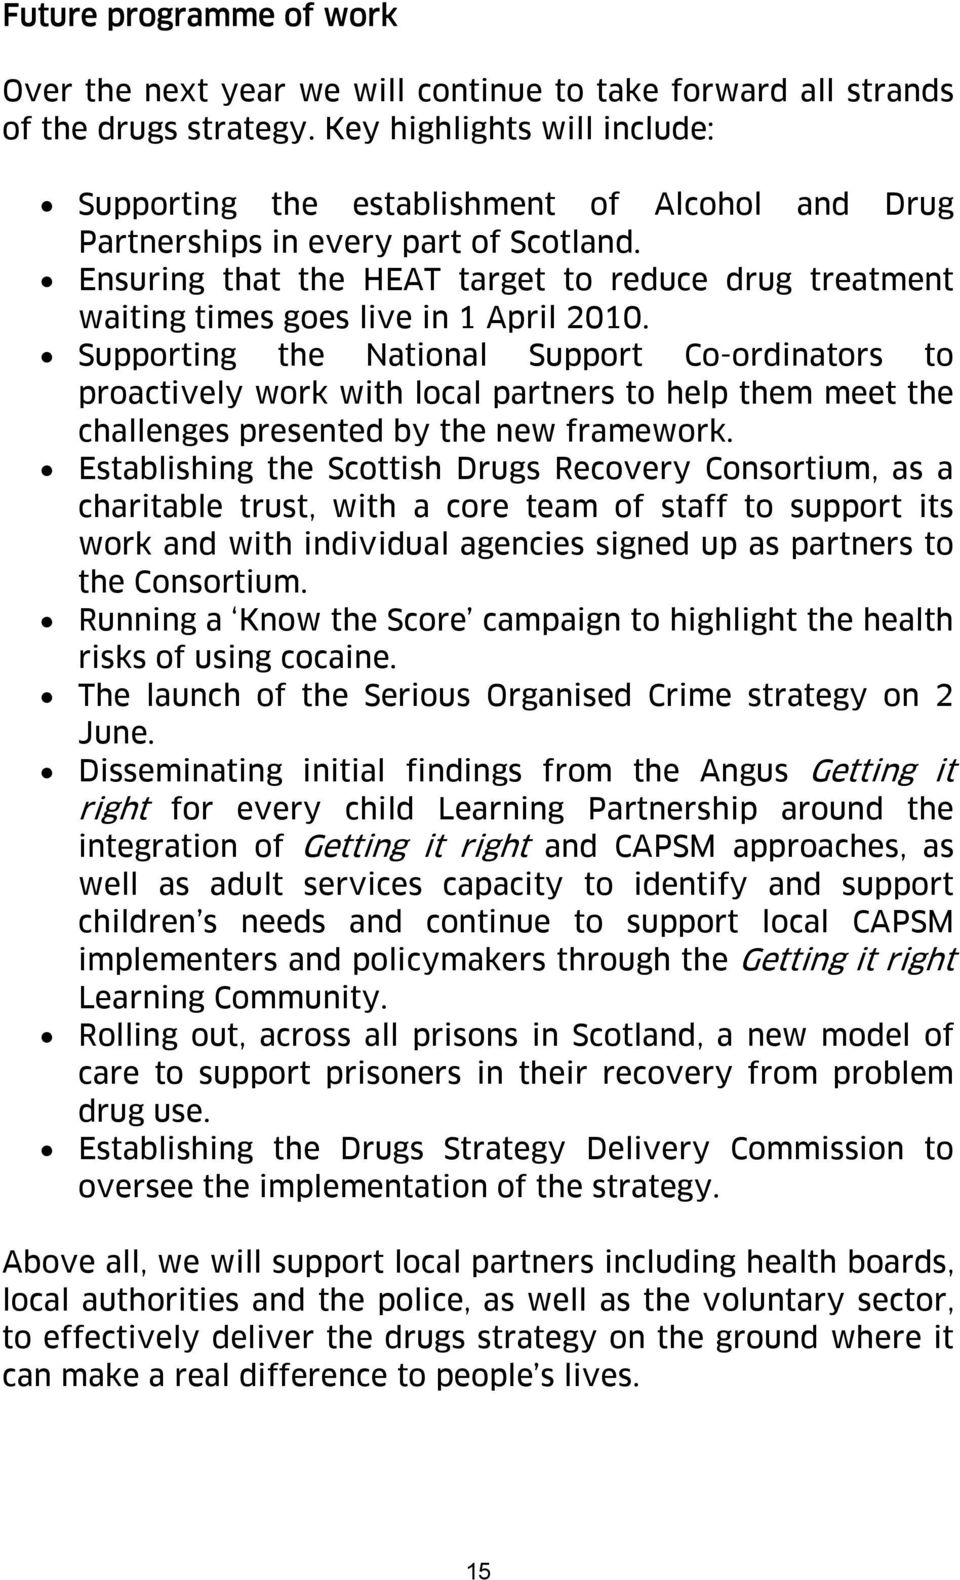 Ensuring that the HEAT target to reduce drug treatment waiting times goes live in 1 April 2010.